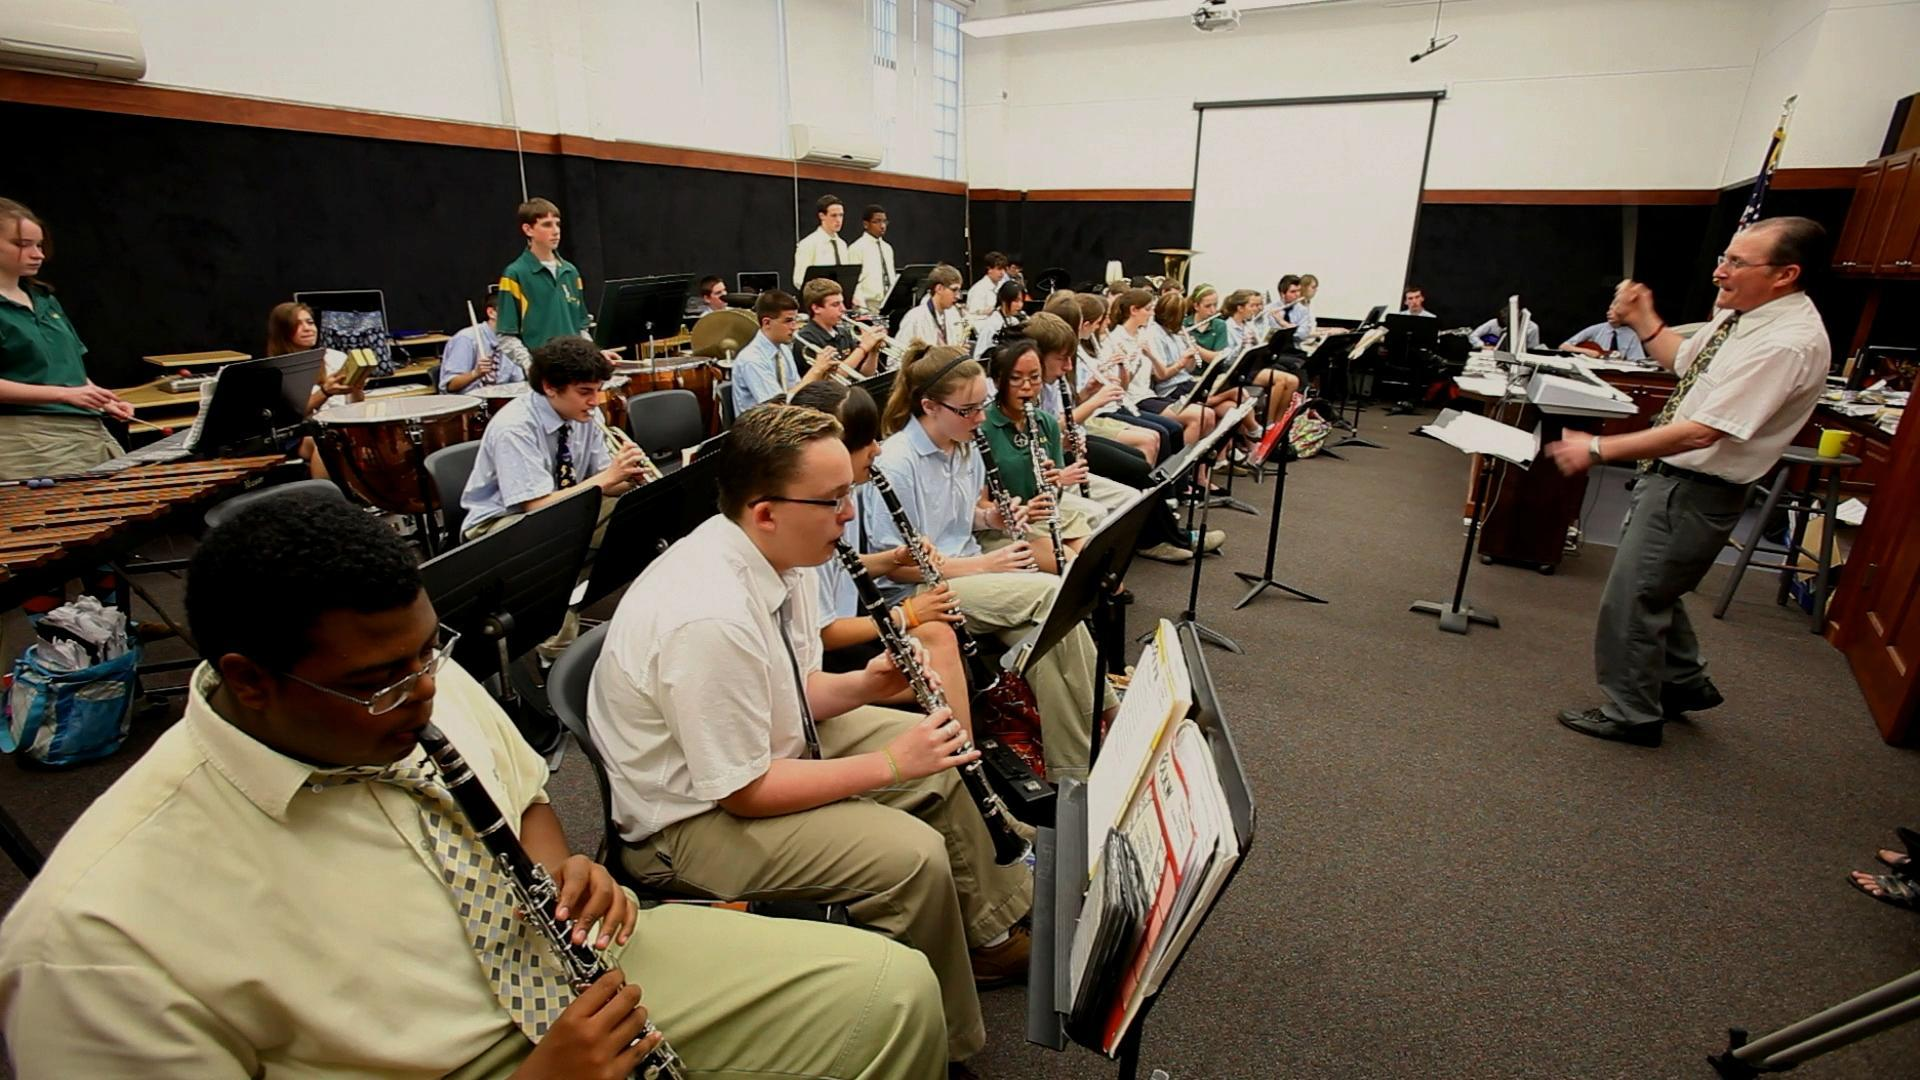 Concert Band practices in band room